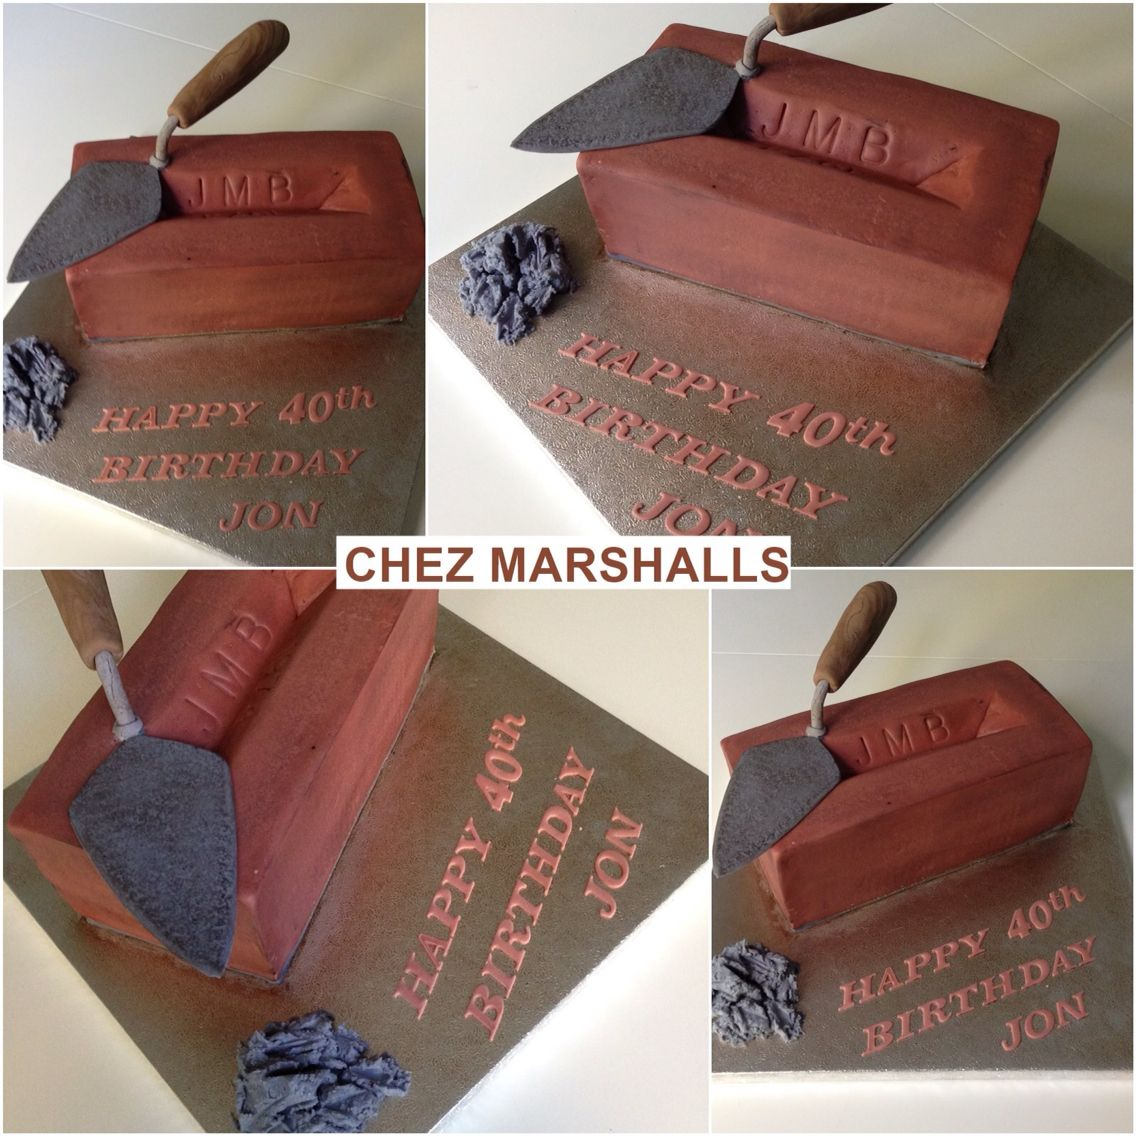 For a bricklayer, a brick cake! | Food | 65 birthday cake